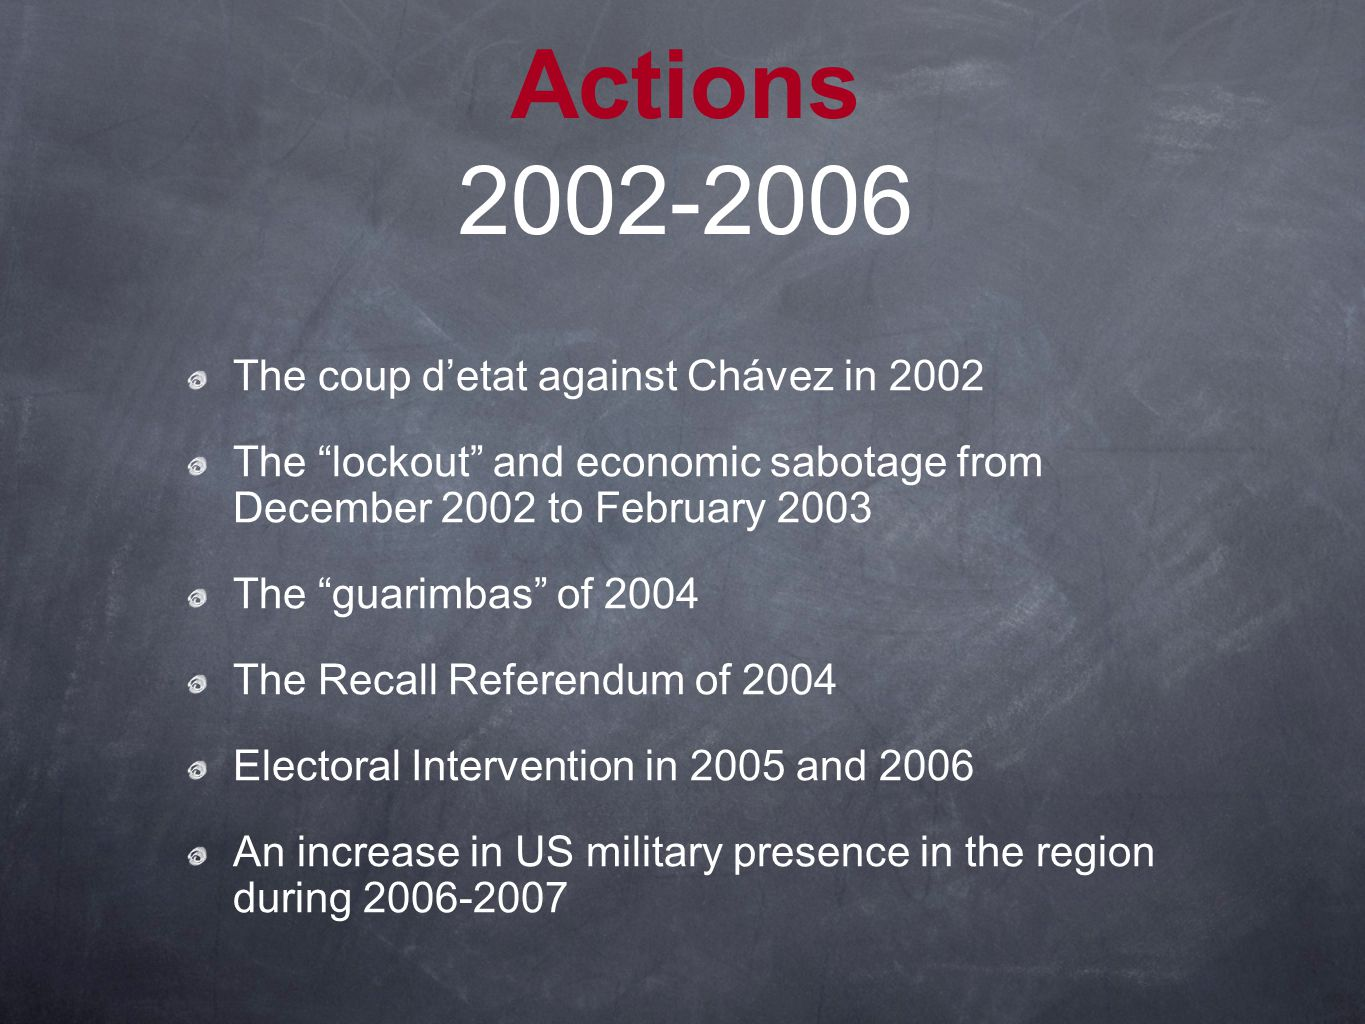 Actions 2002-2006 The coup d'etat against Chávez in 2002 The lockout and economic sabotage from December 2002 to February 2003 The guarimbas of 2004 The Recall Referendum of 2004 Electoral Intervention in 2005 and 2006 An increase in US military presence in the region during 2006-2007